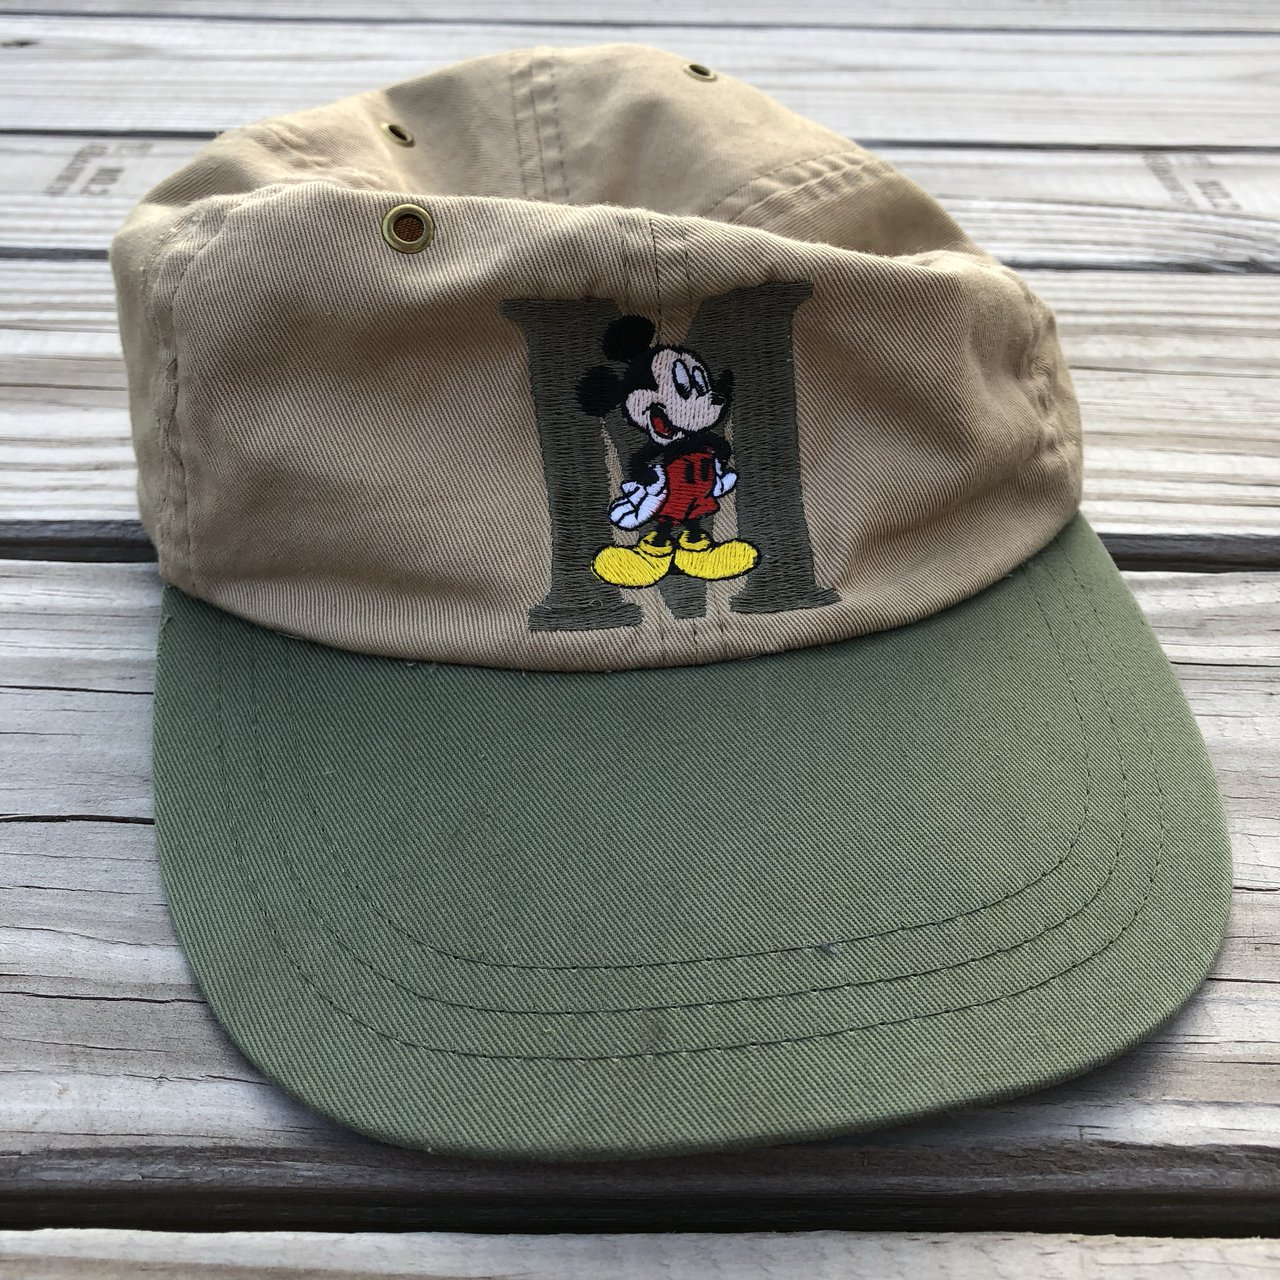 c52f5885432  kidstablevintage. 2 months ago. United States. Vintage embroidered Mickey  Mouse elastic hat. Tags  stitch ...